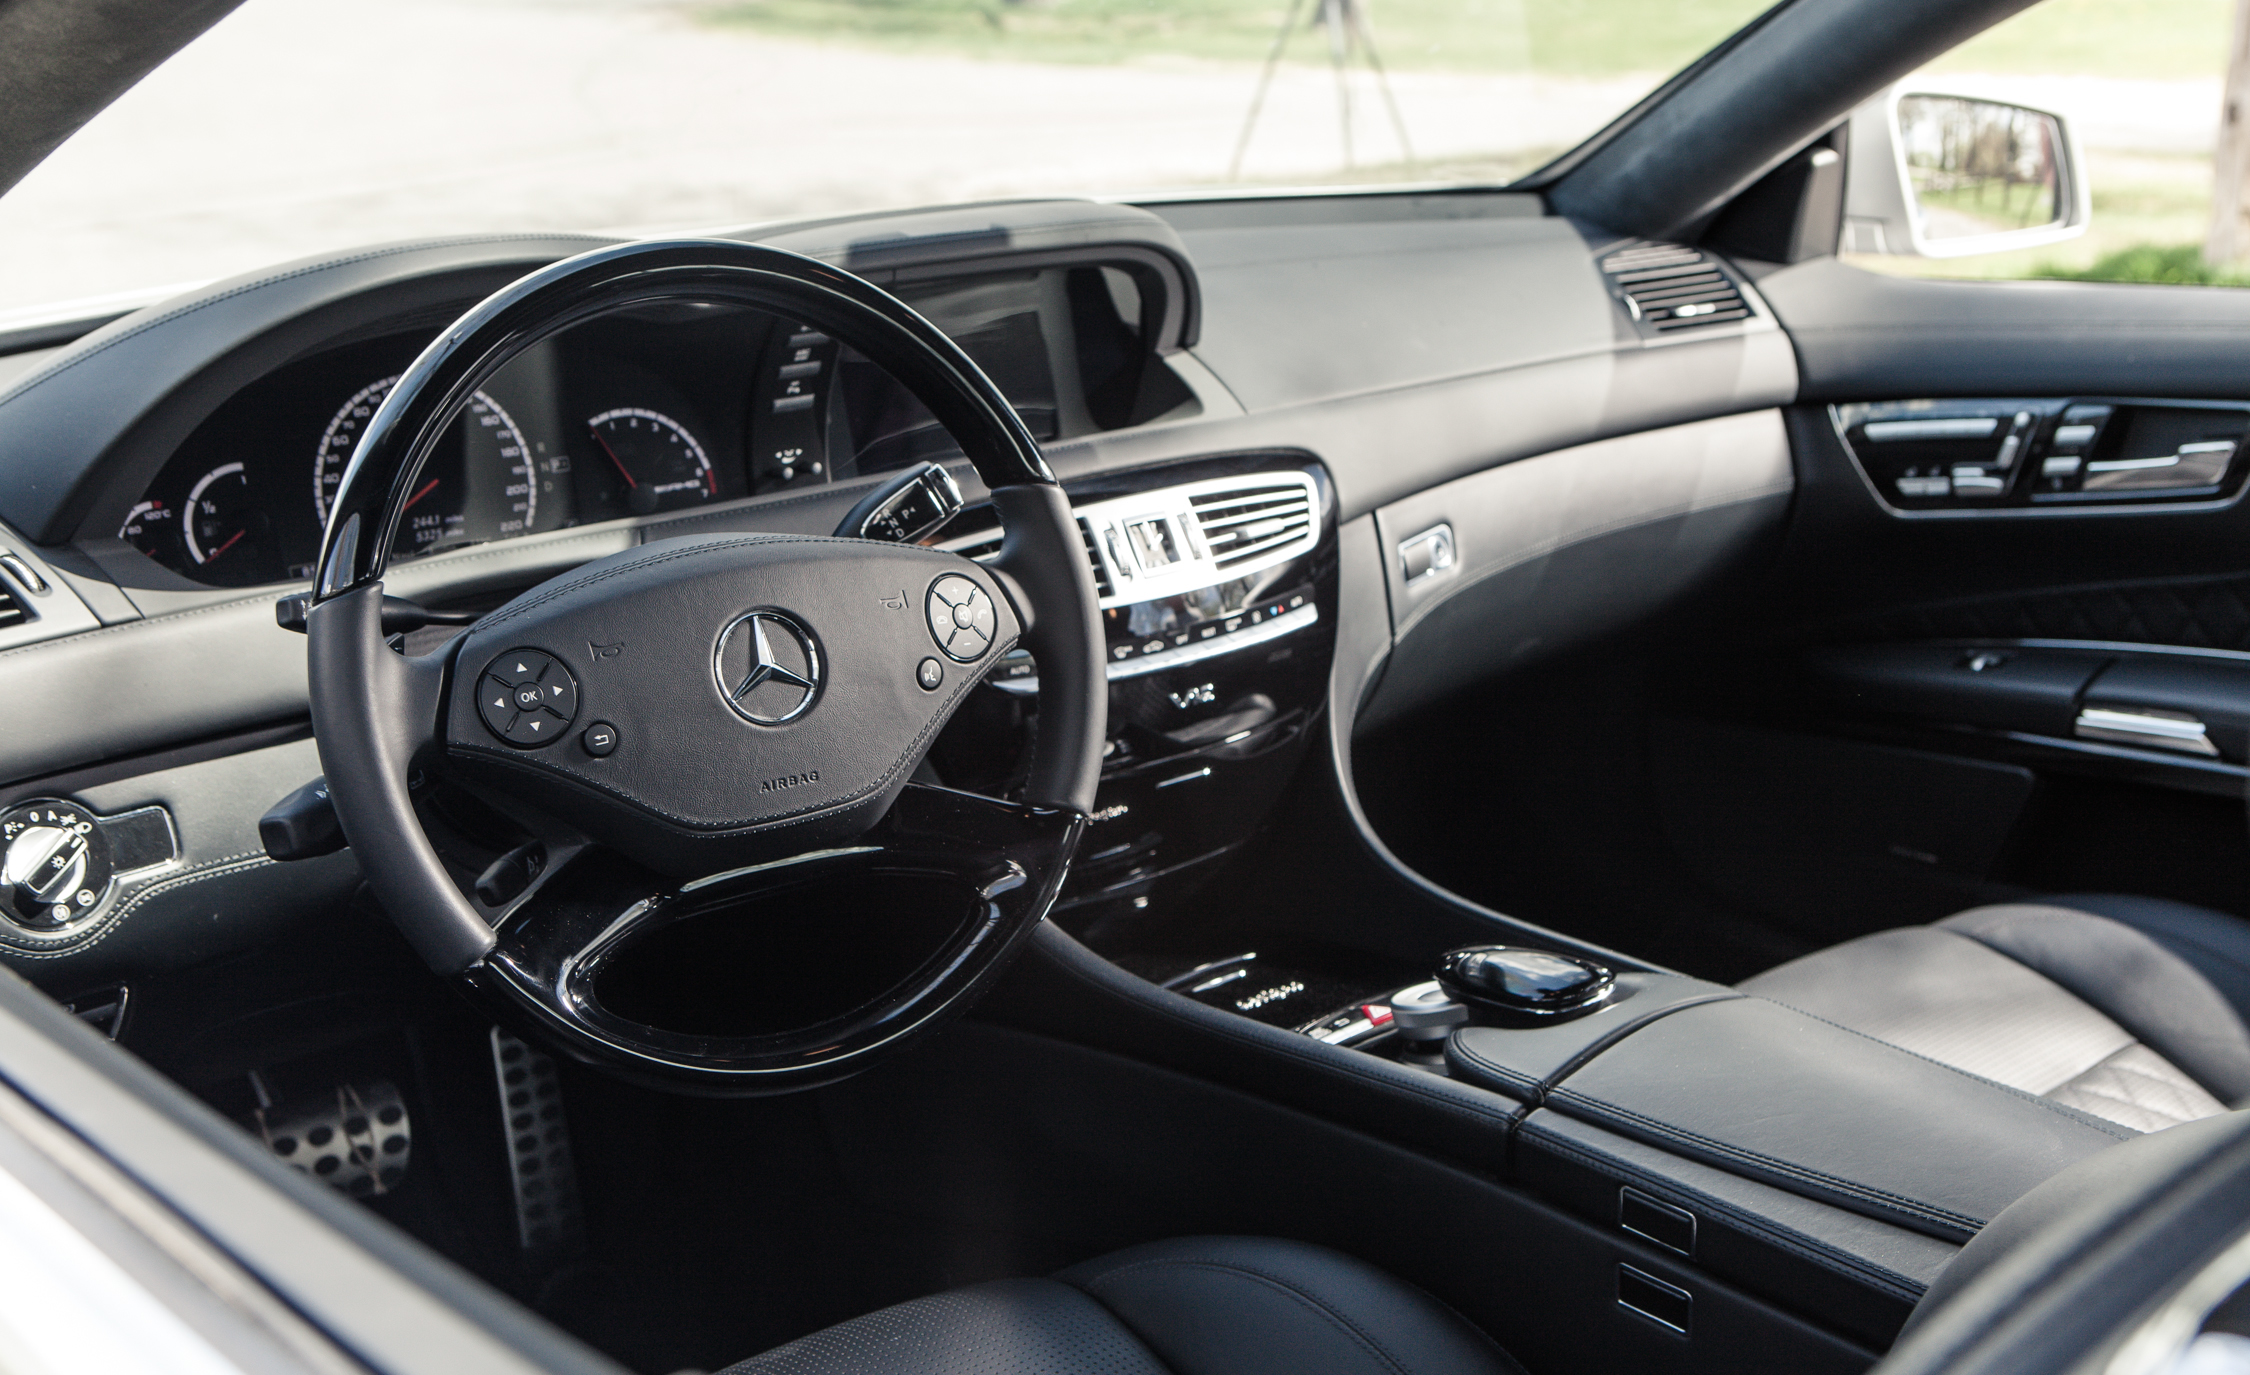 2013 Mercedes Benz CL65 AMG Interior Driver Steering (Photo 14 of 27)